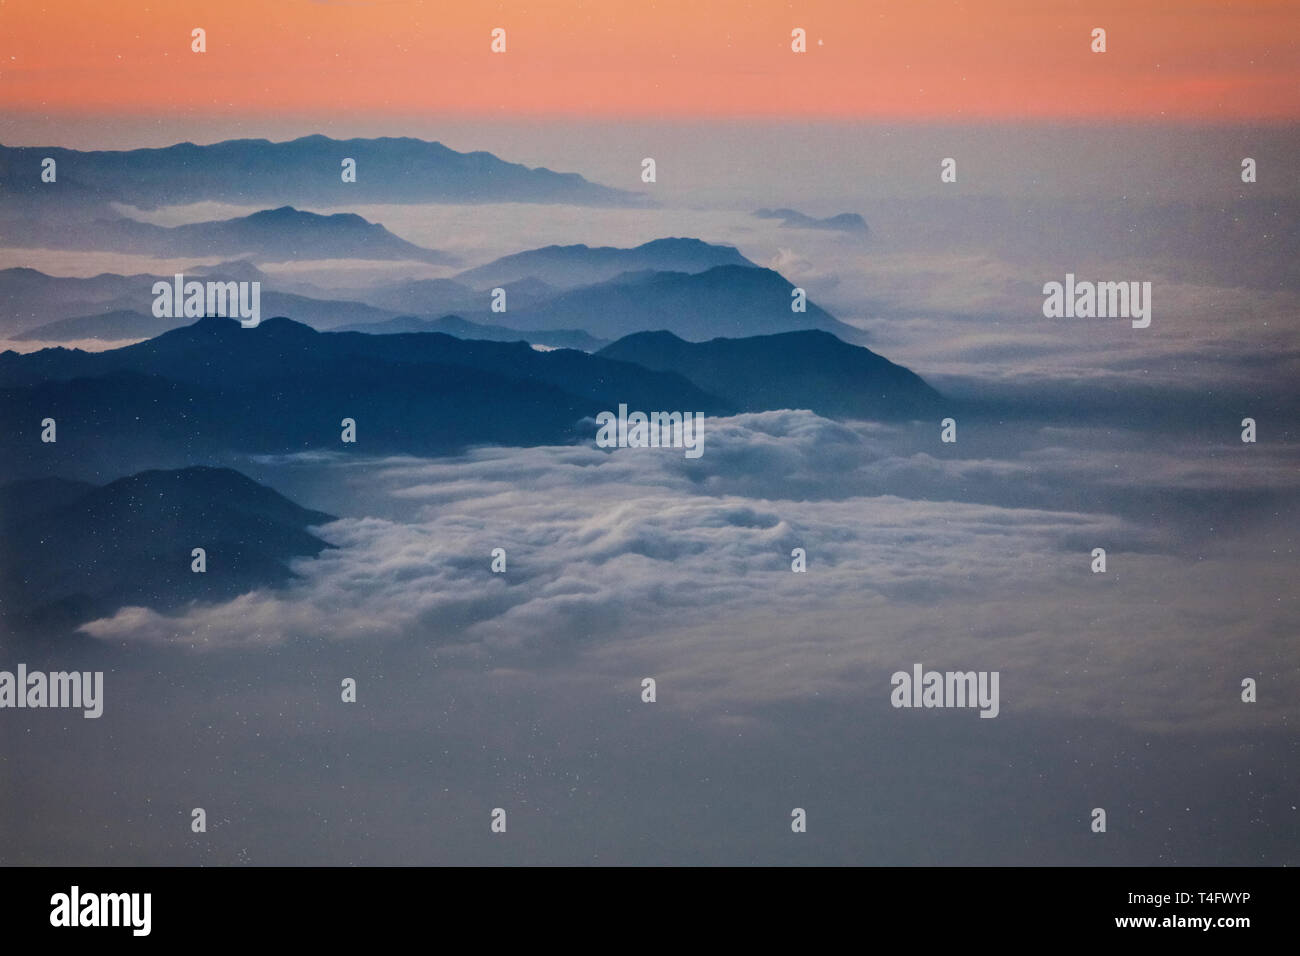 Photo of a high mountain peaks on the sunrise in Africa, Kilimanjaro.Red and peach colors of the sky, white clouds wrapping black mountain range. Peak Stock Photo